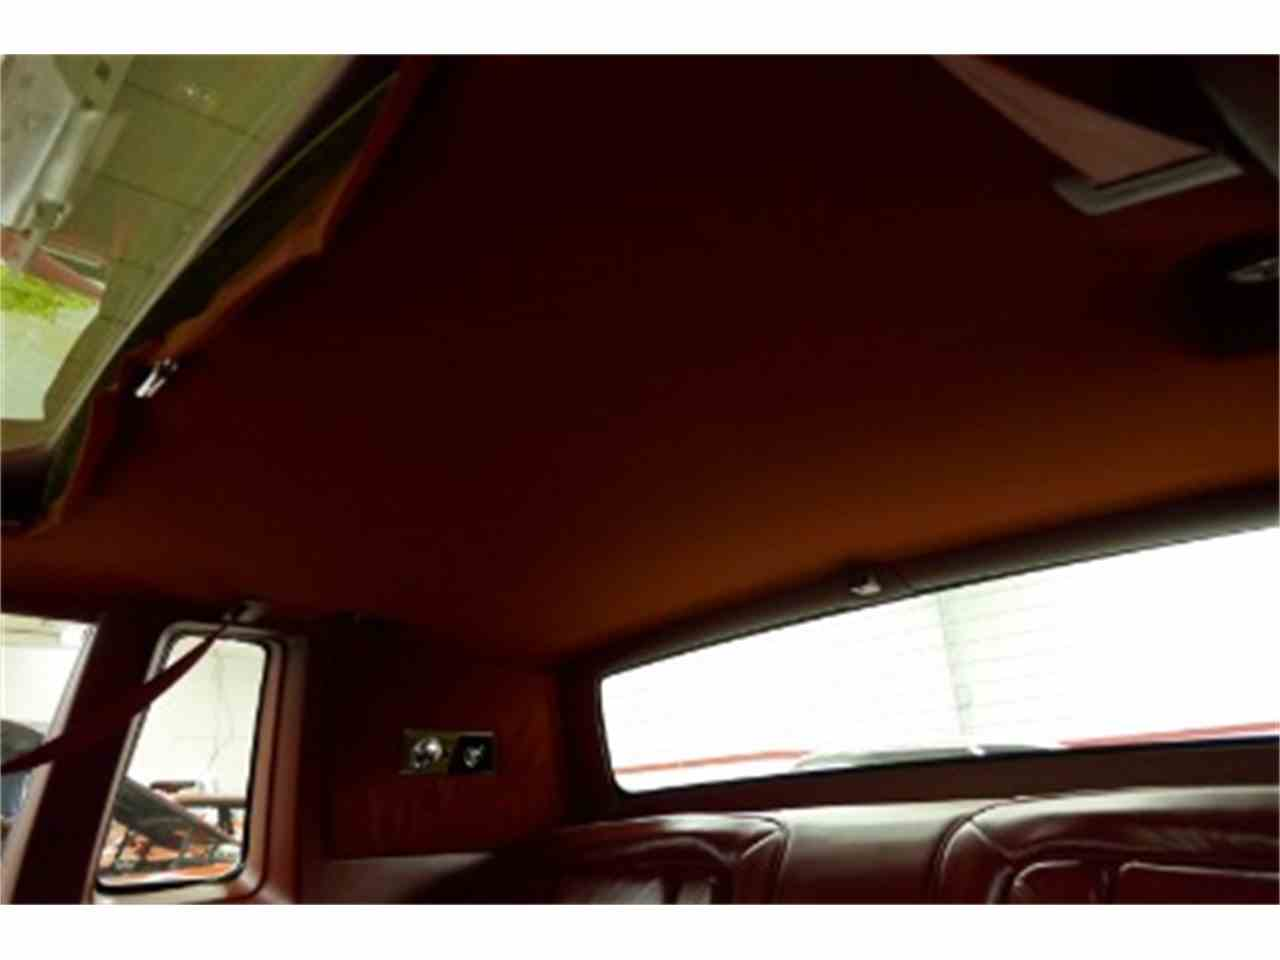 Large Picture of '85 Cadillac Fleetwood located in Illinois - $34,900.00 - LTM2